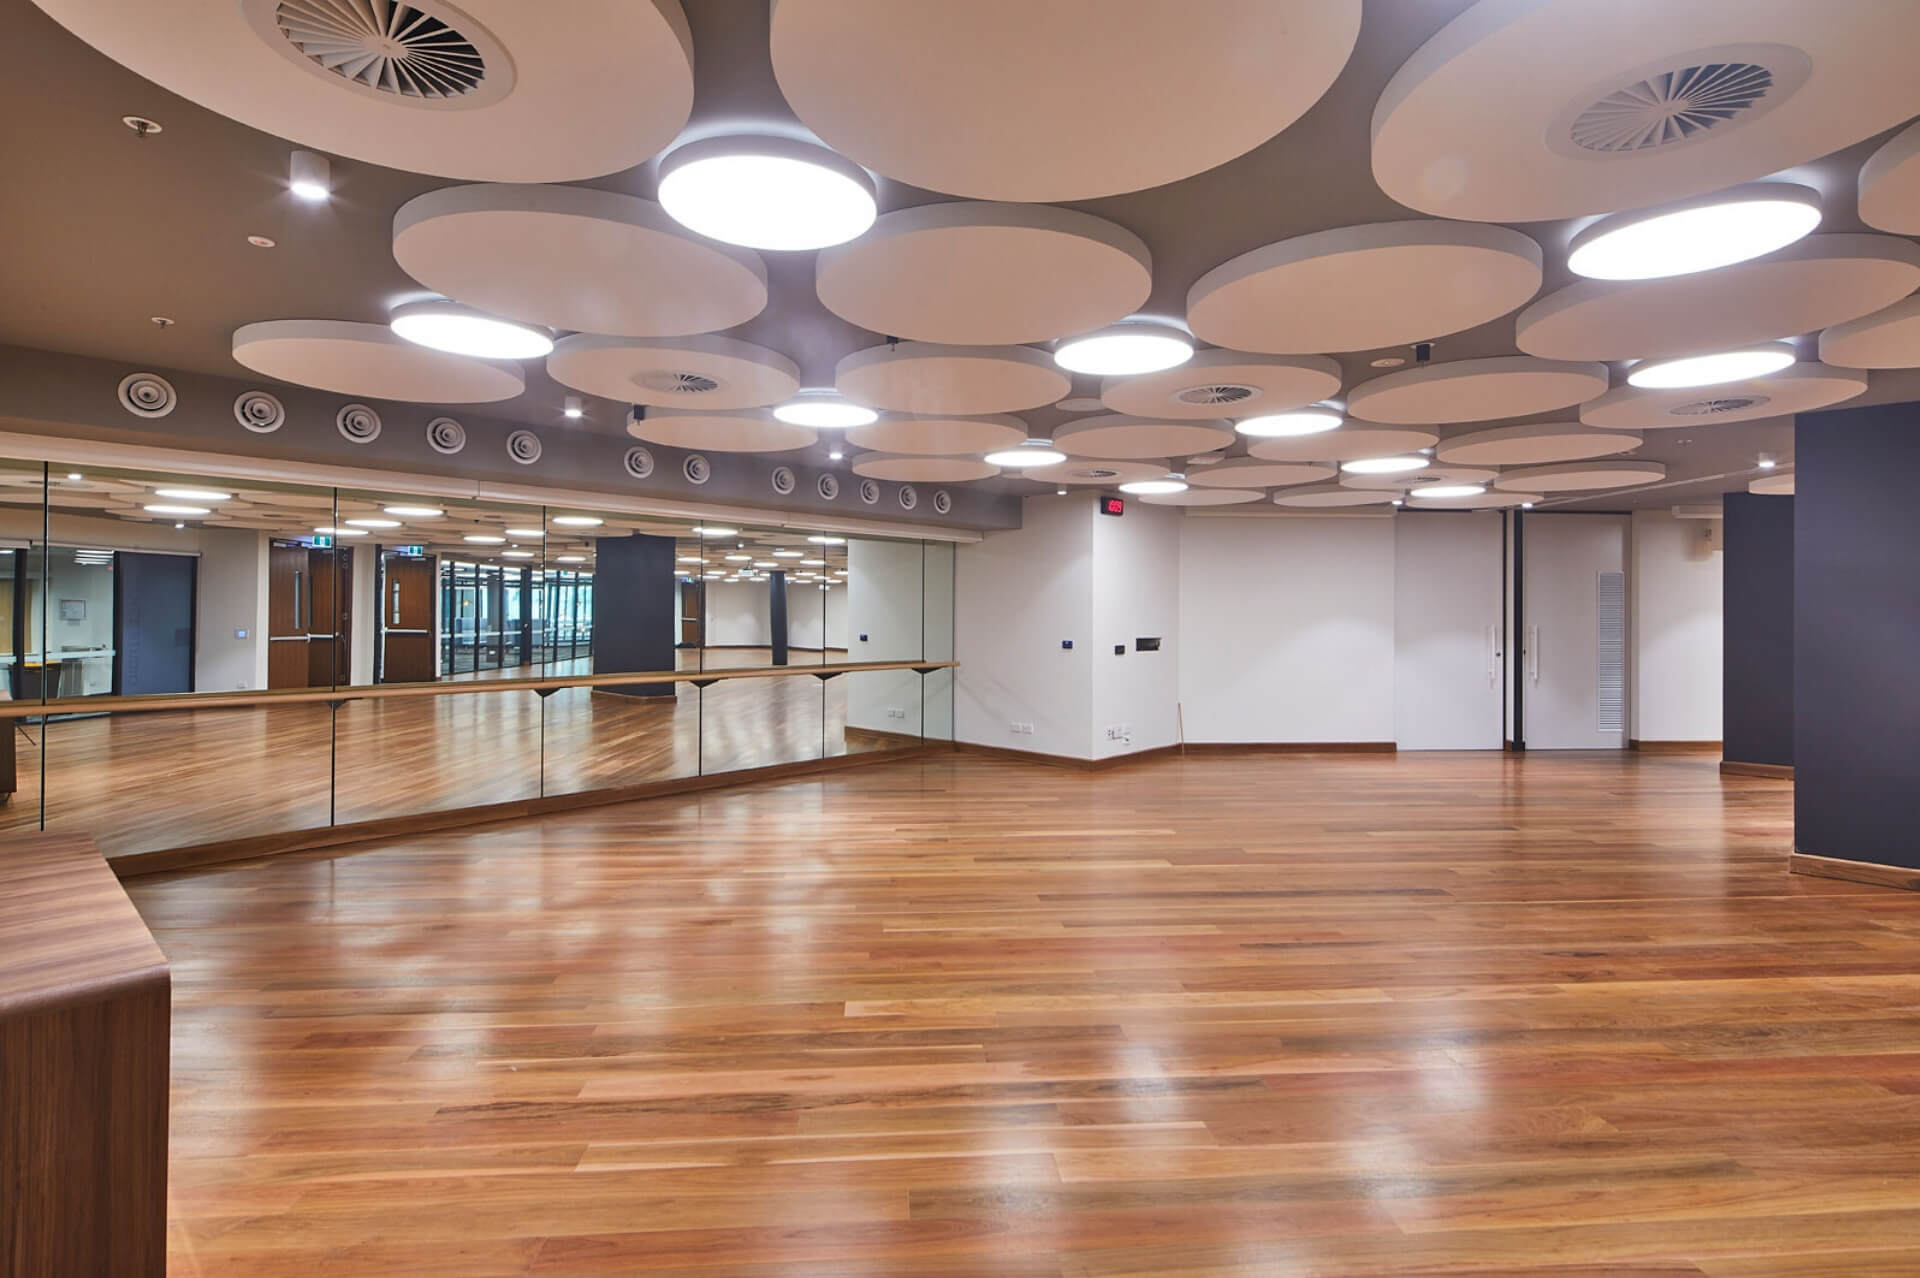 Dance studio at WPCCL